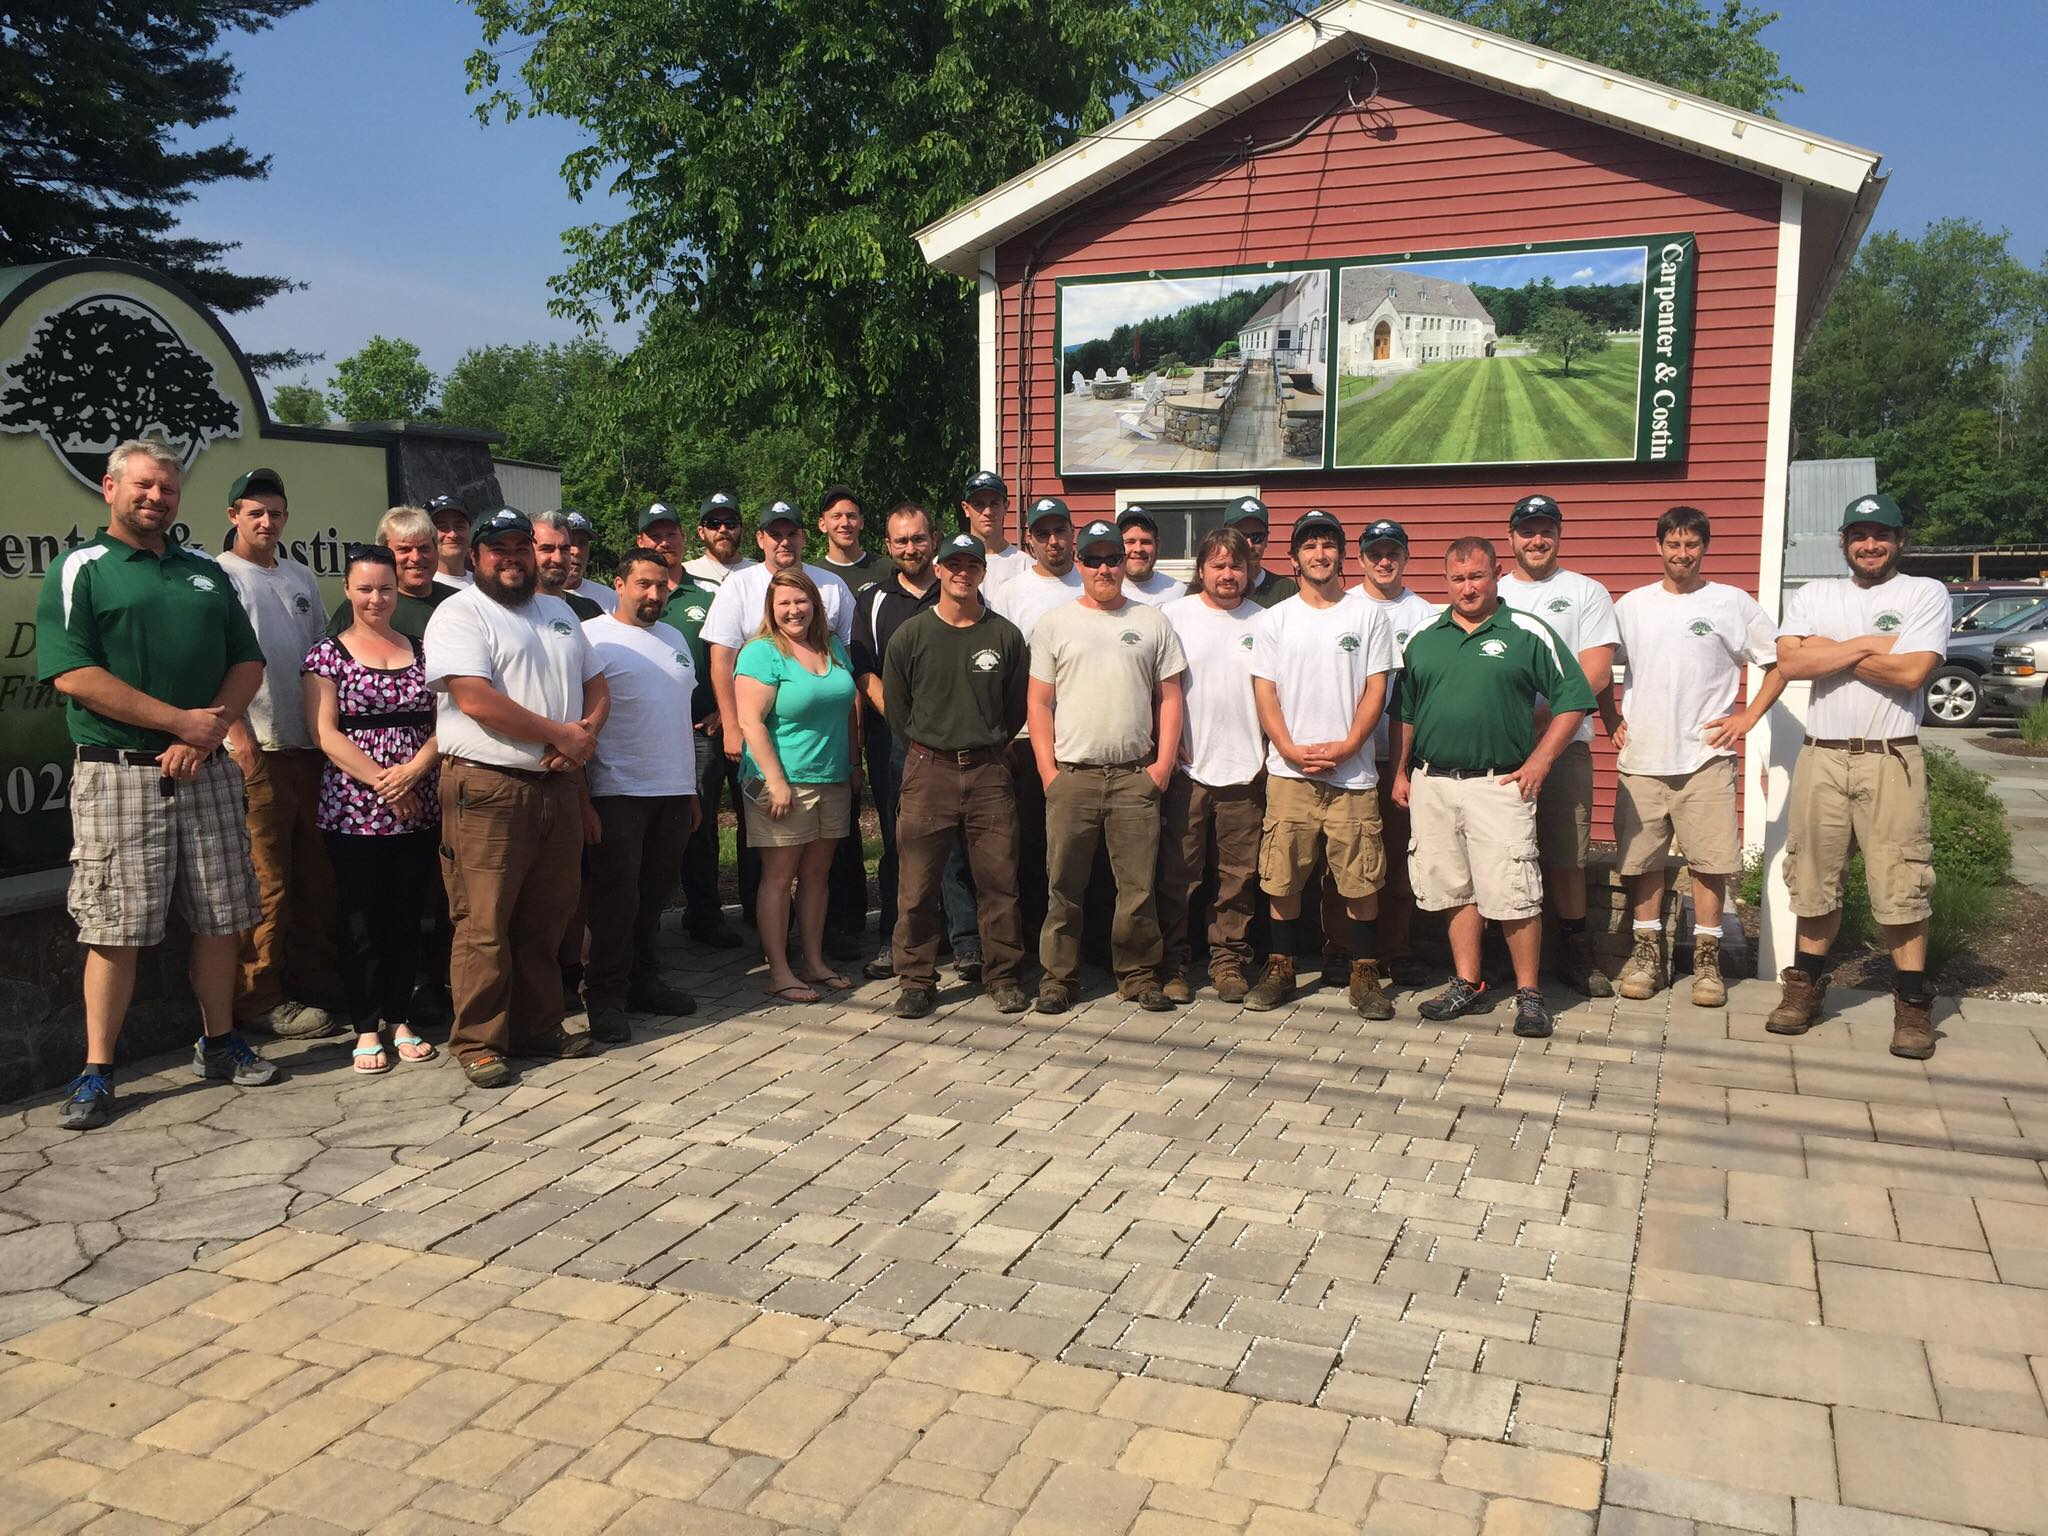 Carpenter & Costin, Rutland VT, Landscape Designers and Commercial Landscape Maintenance snowplowing